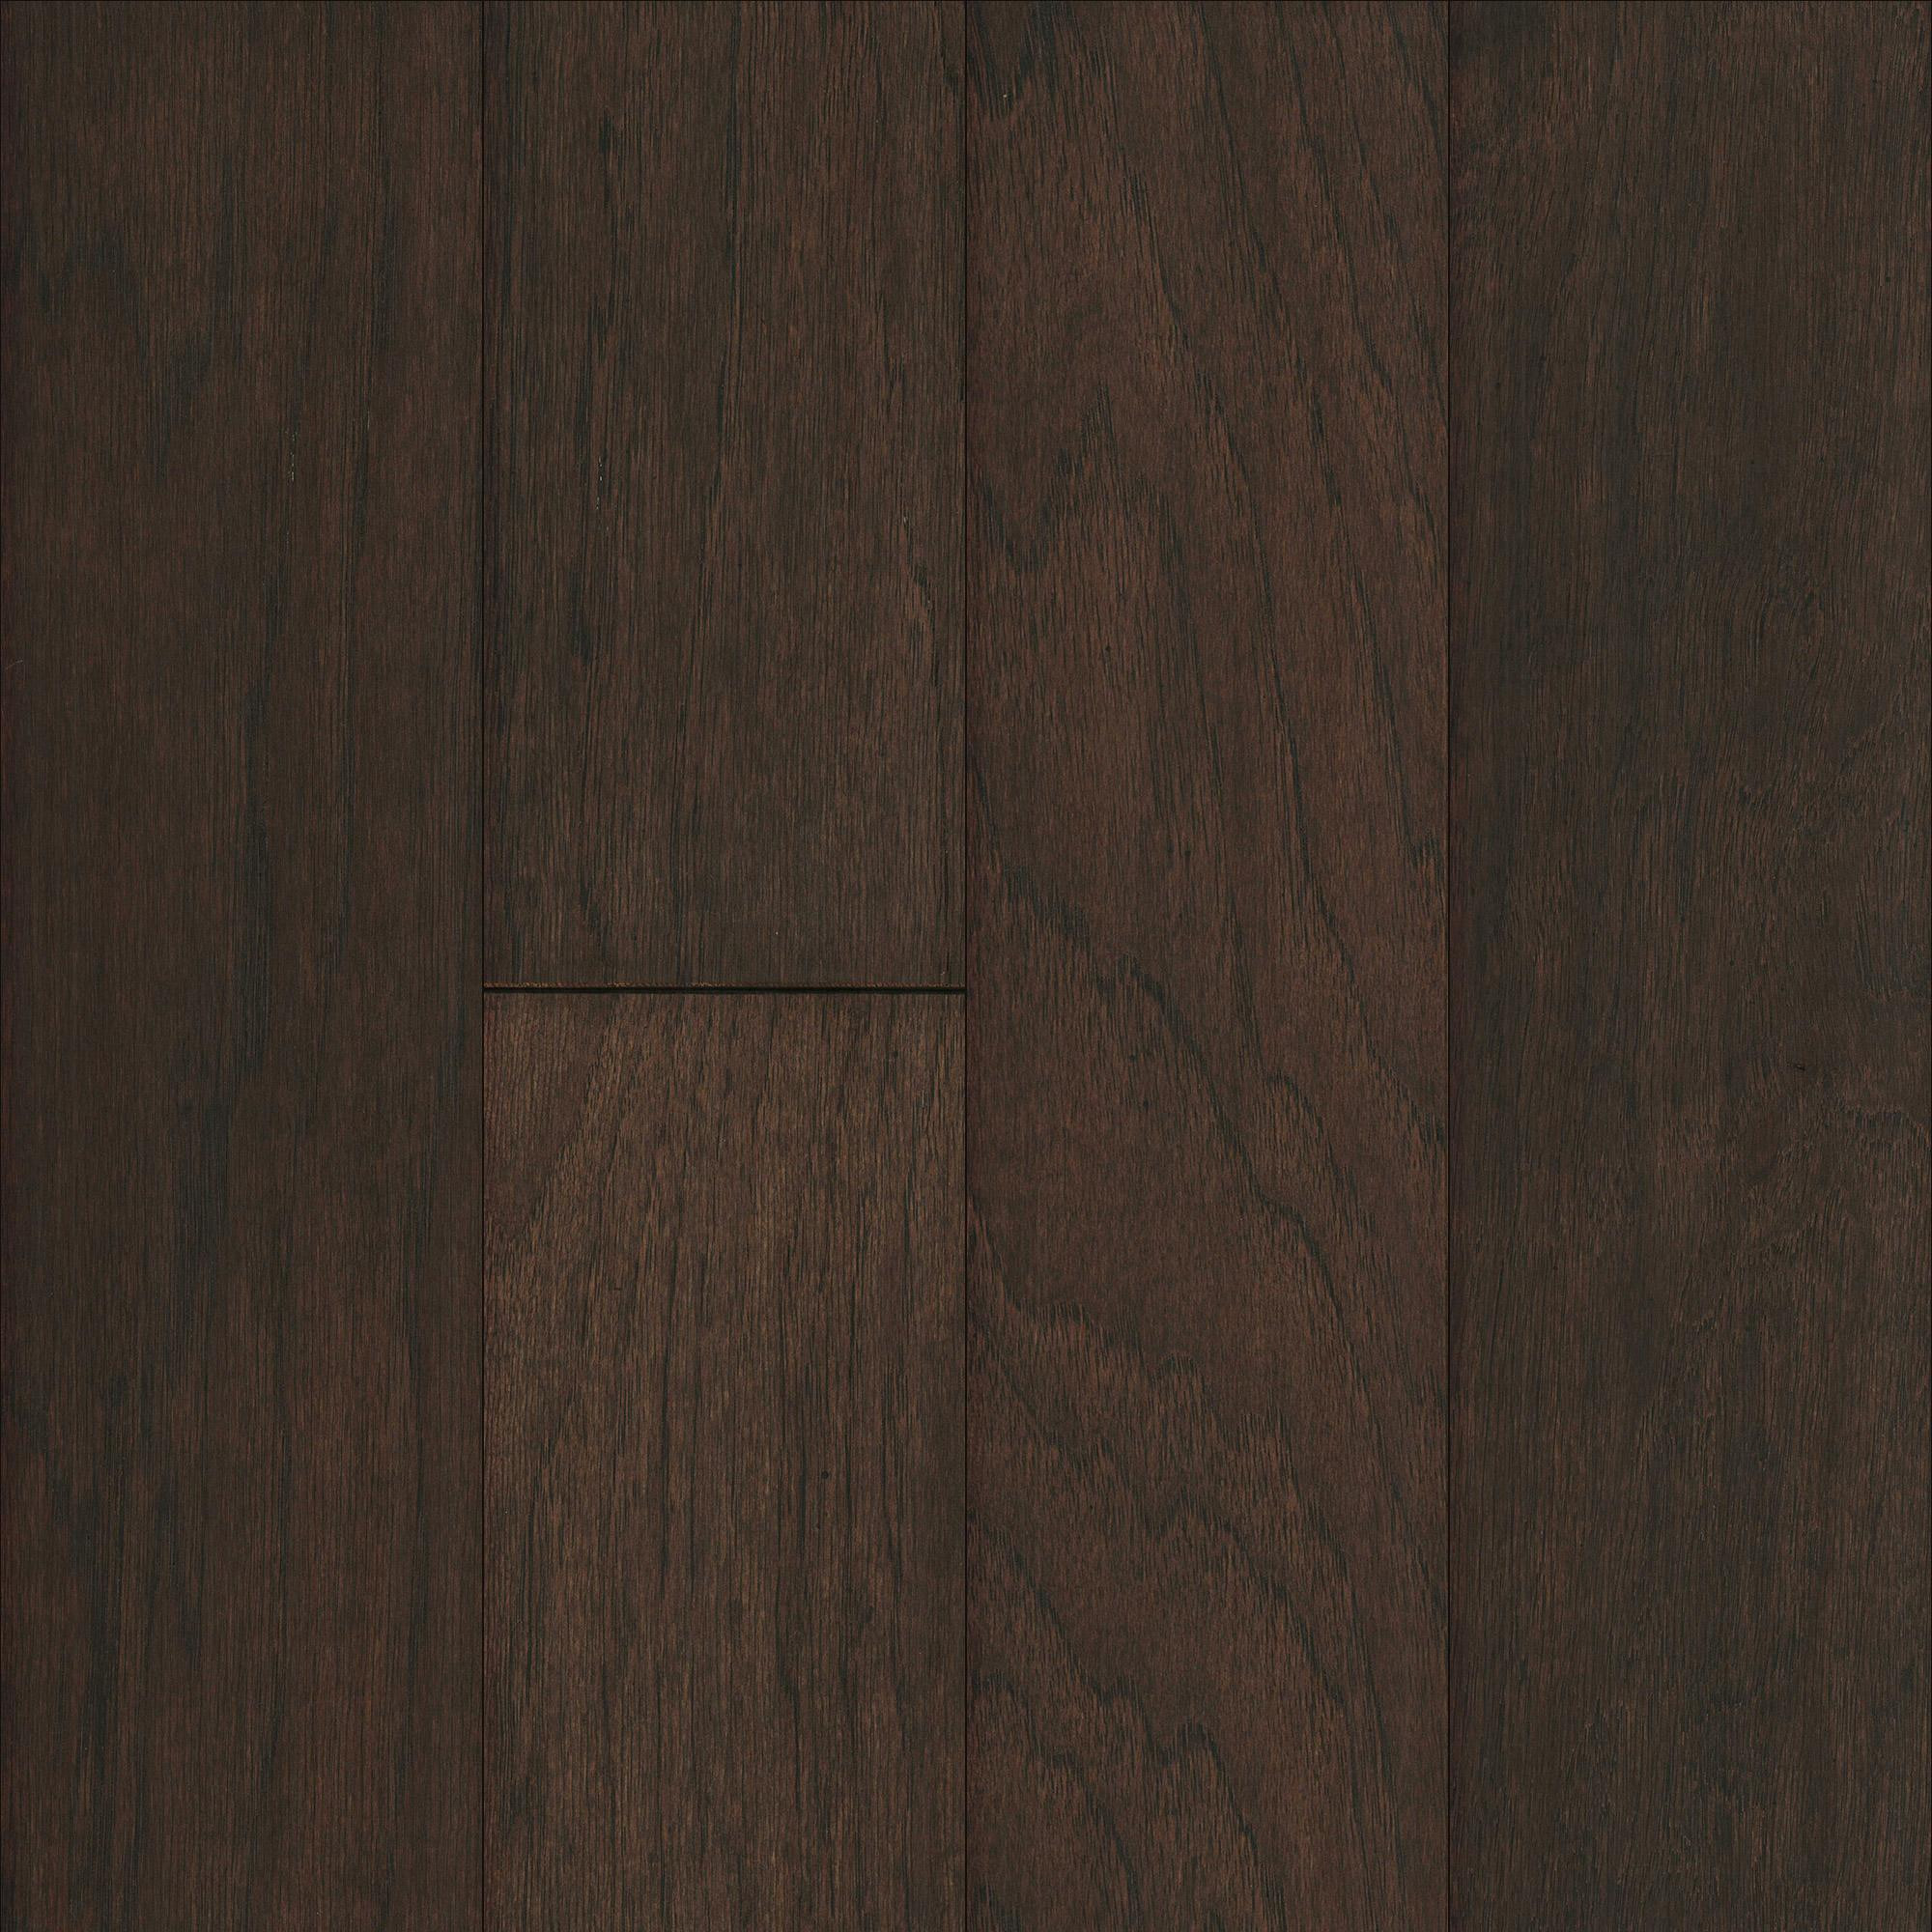 wide plank hickory engineered hardwood flooring of mullican devonshire hickory espresso 5 engineered hardwood flooring regarding hickory espresso 5 x 40 2000 a